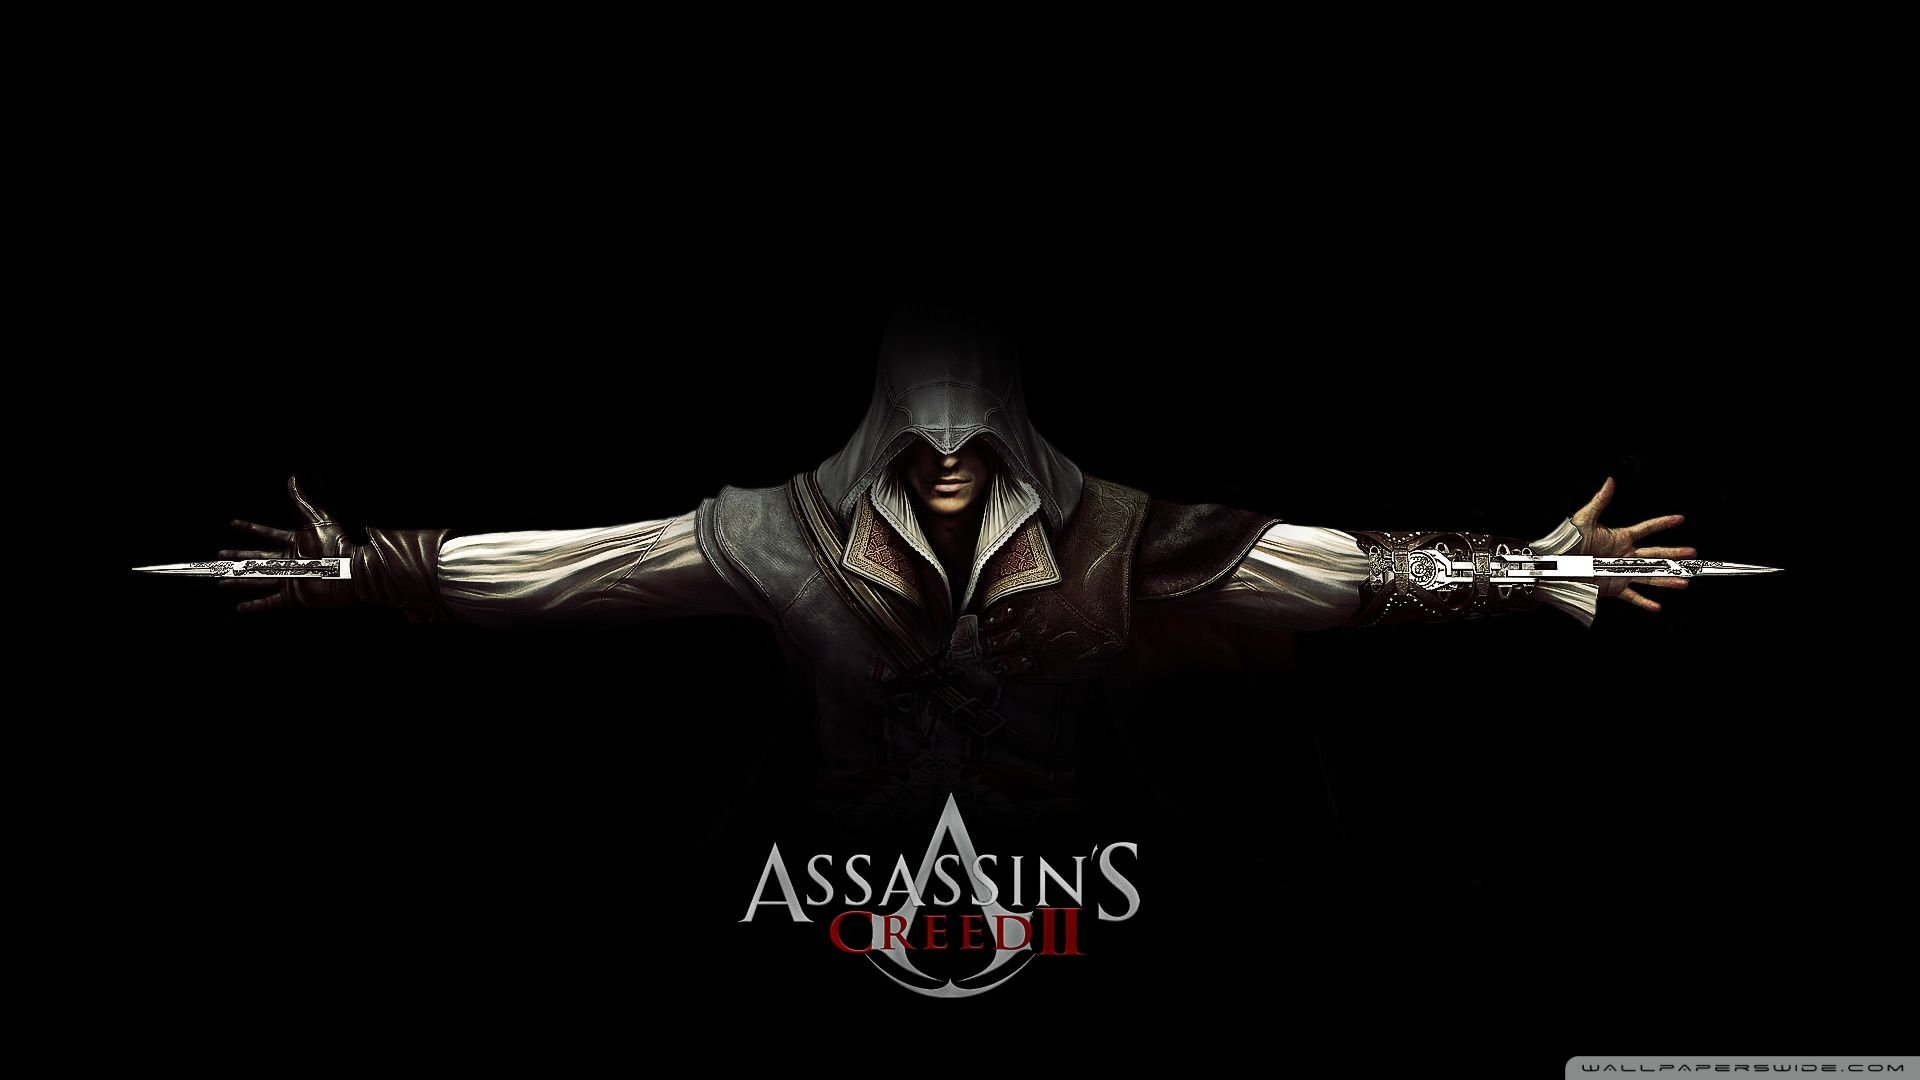 Joey jordison style favor photos pictures and wallpapers for - Assassins Creed Ezio Black Hd Desktop Wallpaper Widescreen